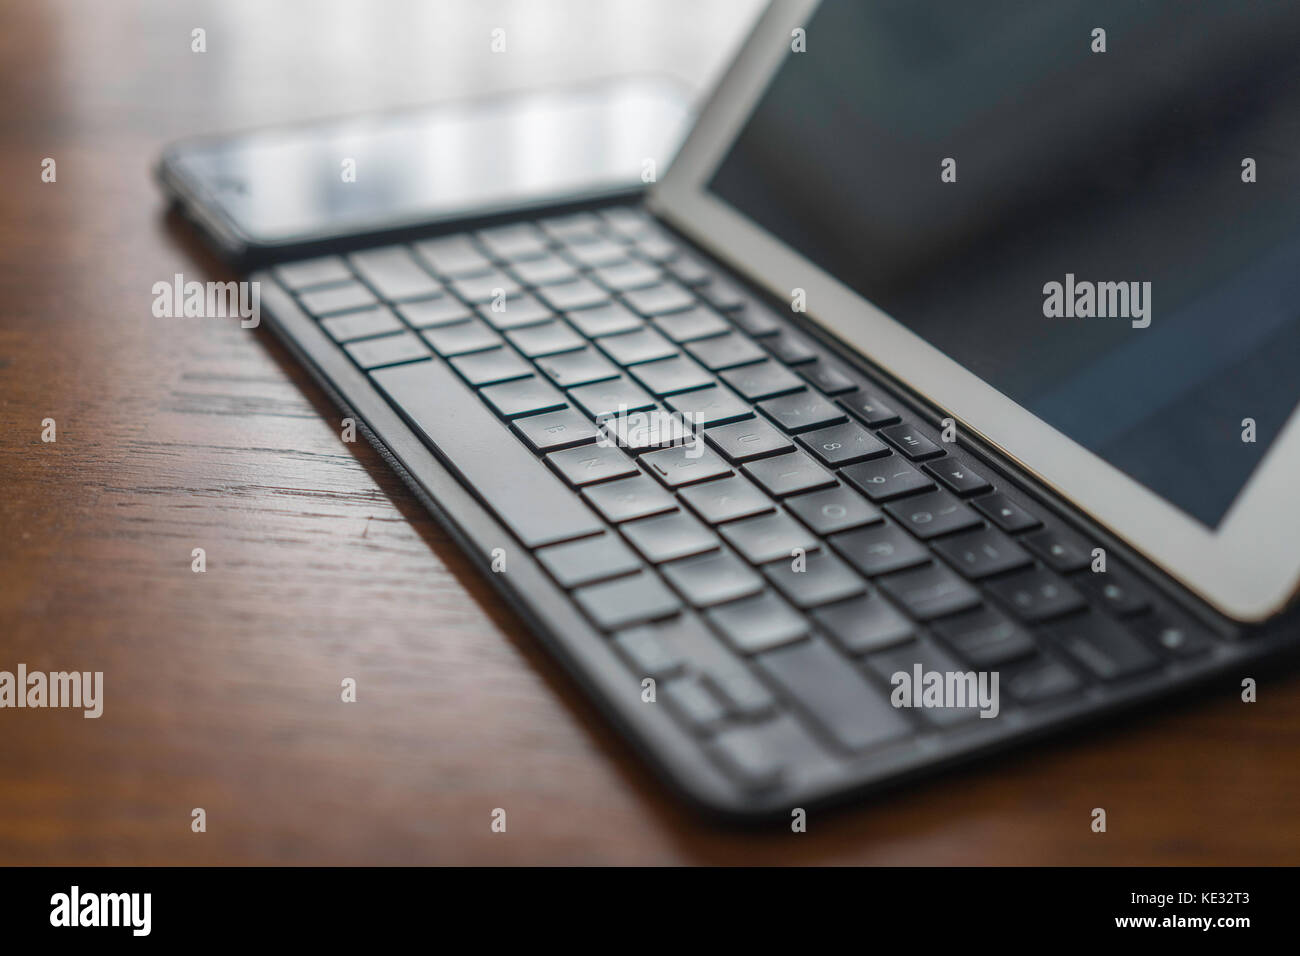 Home office with Gadgets - Tablet and Cell Phone - Stock Image